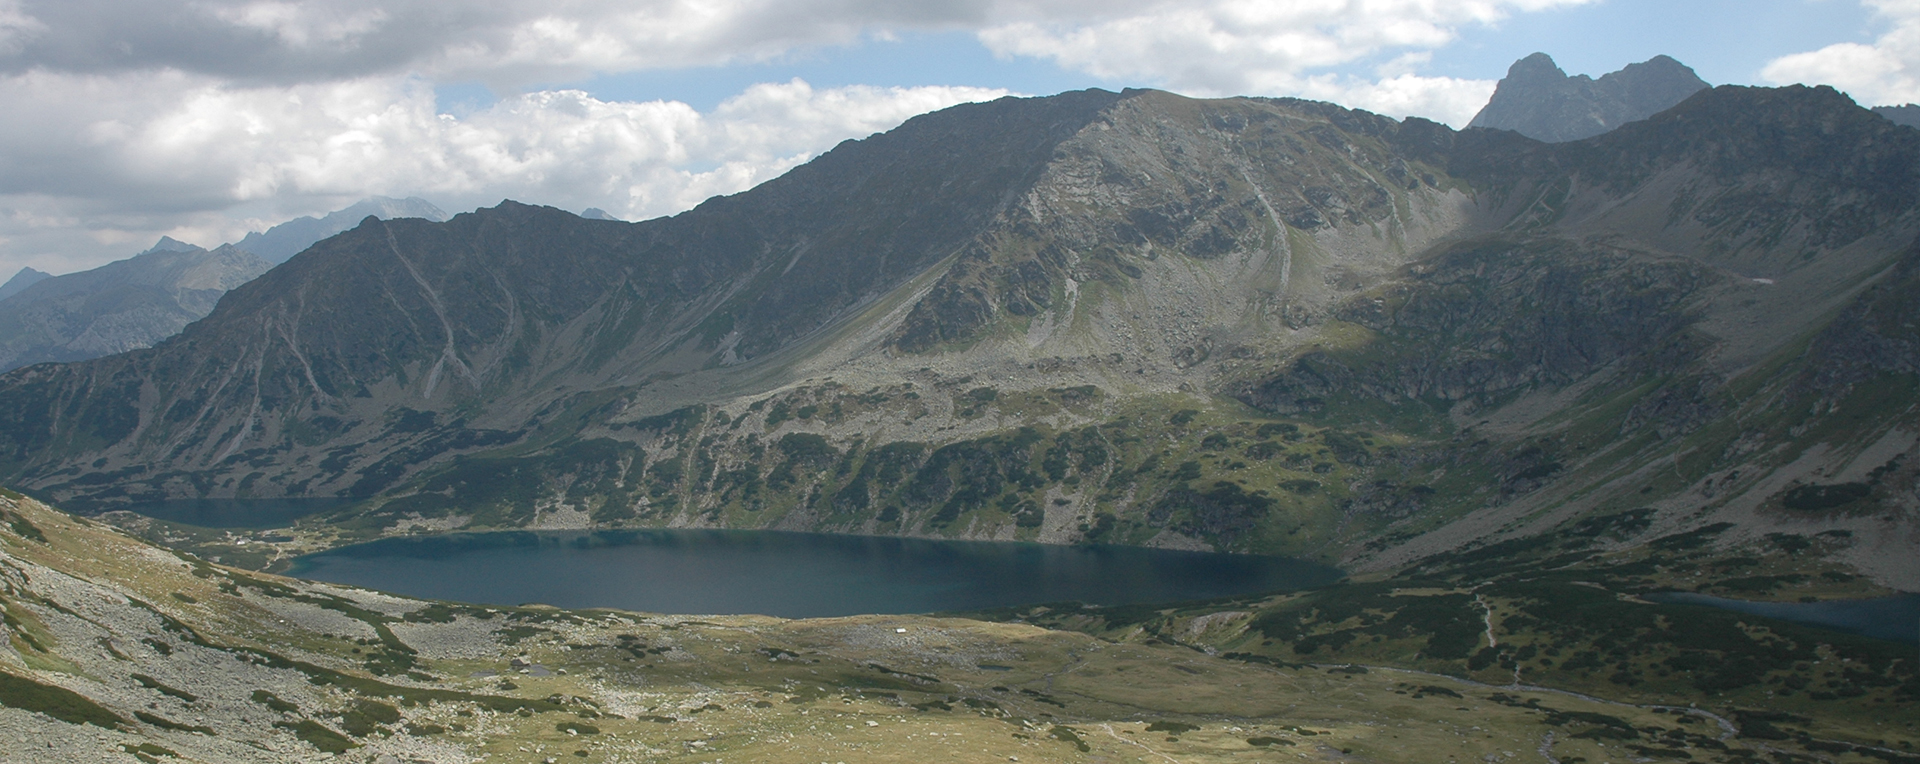 Adventure in the High Tatras